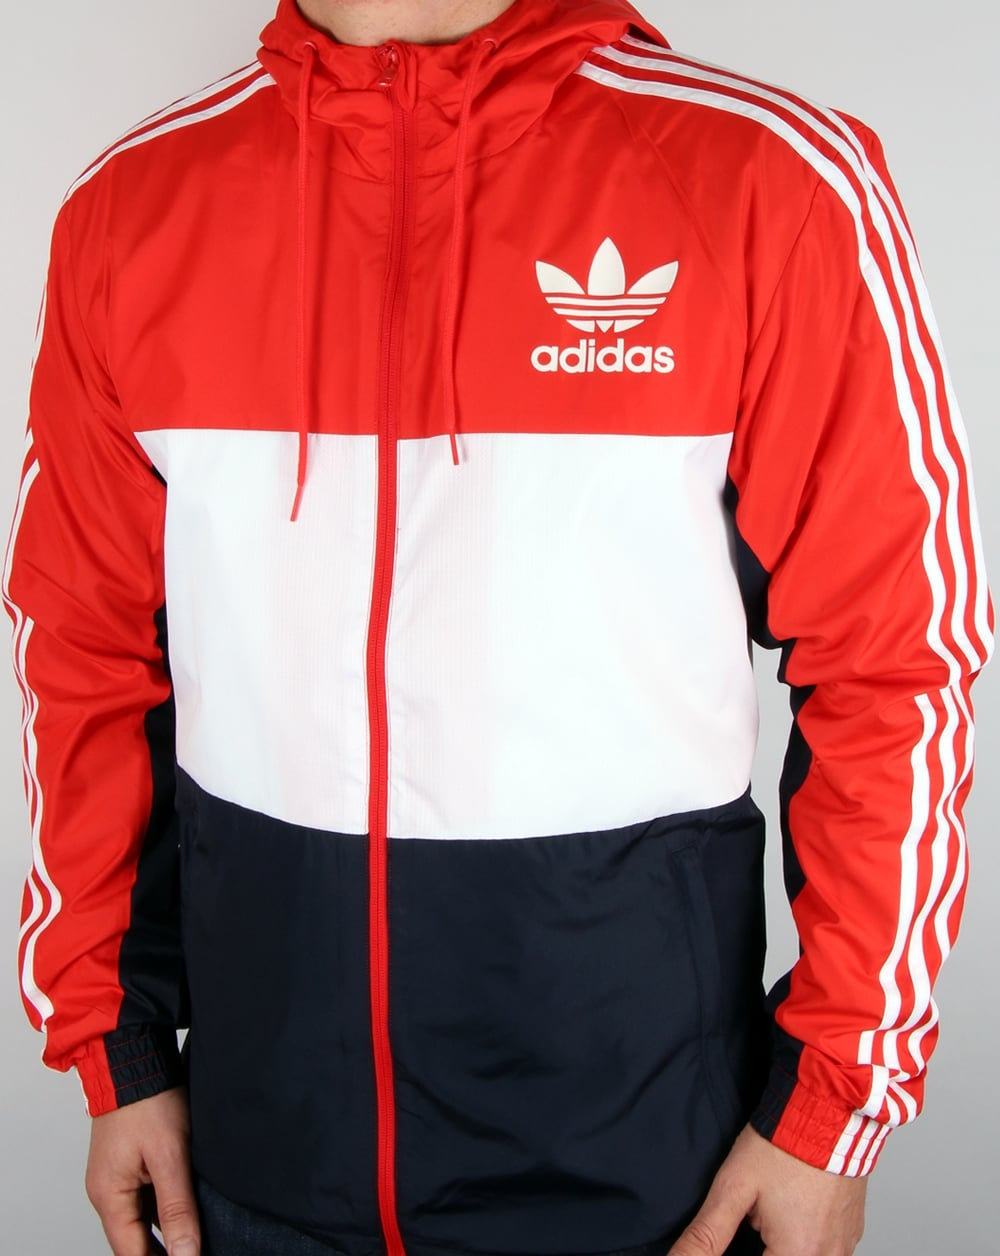 Adidas Originals California Windbreaker Red white navy, Men s, Jacket 9ee3546bd3